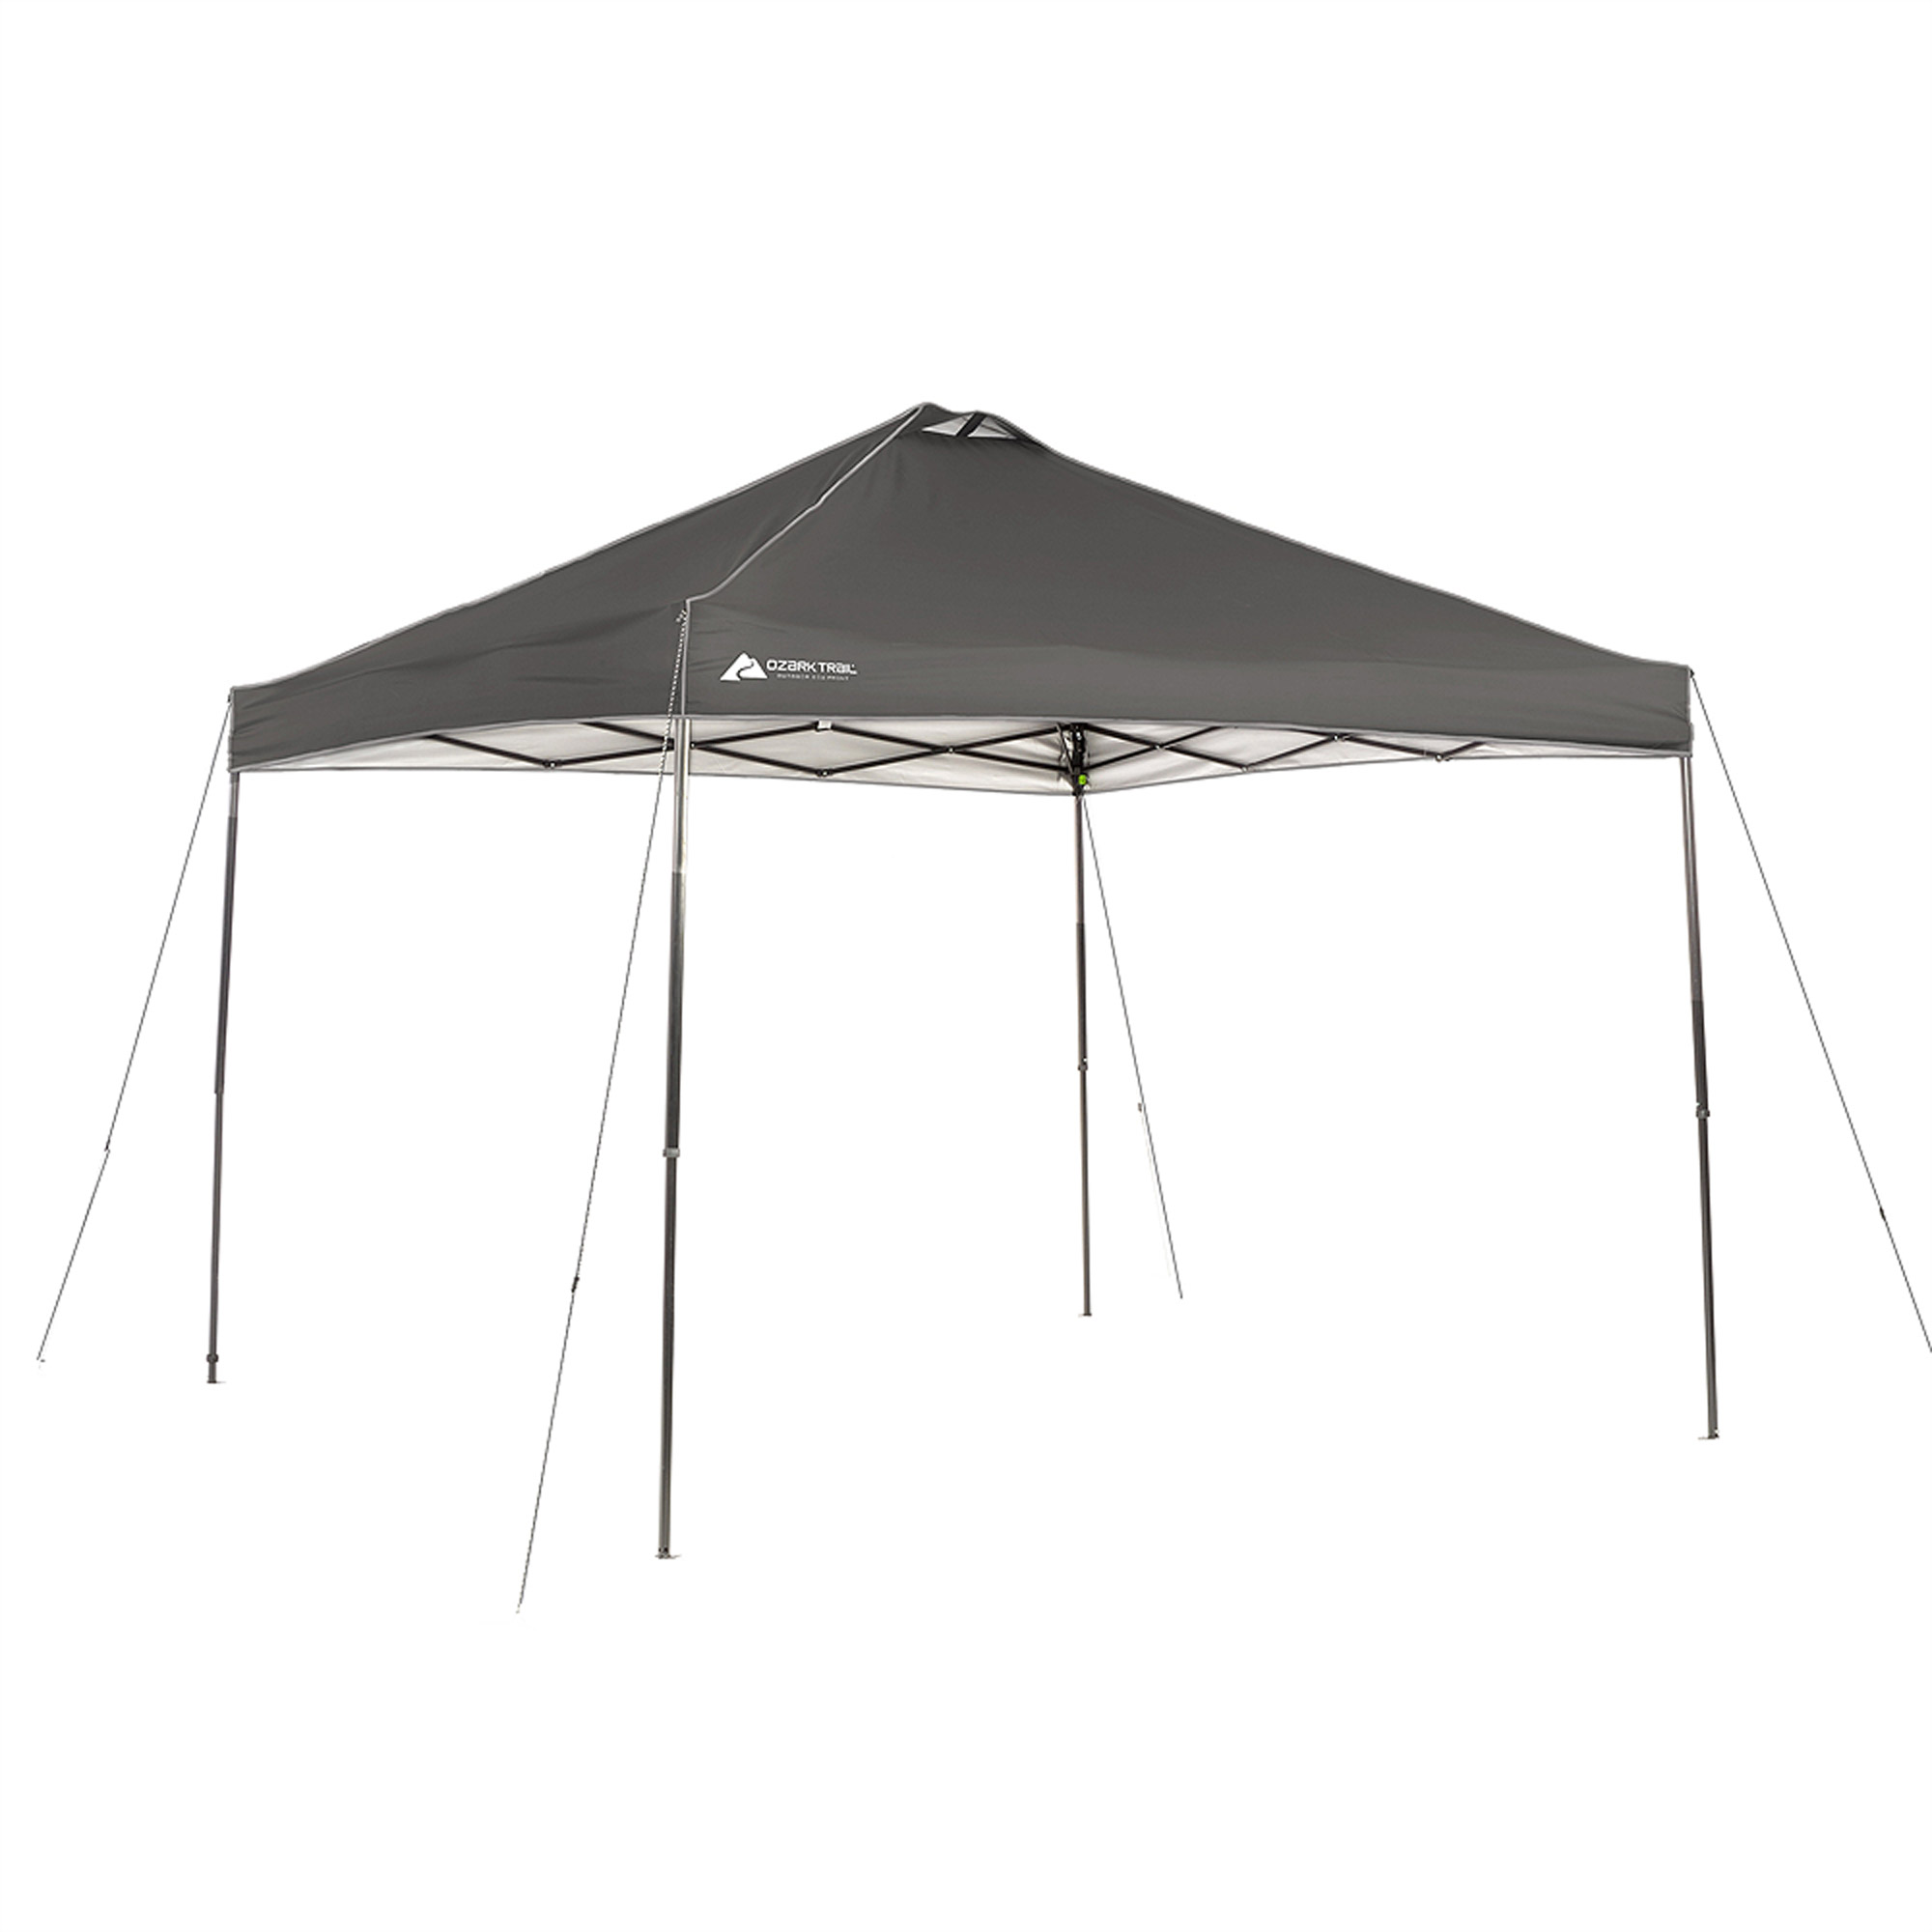 Ozark Trail Instant Canopy Dark Grey 10u0027 x 10u0027 ...  sc 1 st  Walmart & Ozark Trail Instant 10x10 Straight Leg Canopy with 4 Chairs Value ...